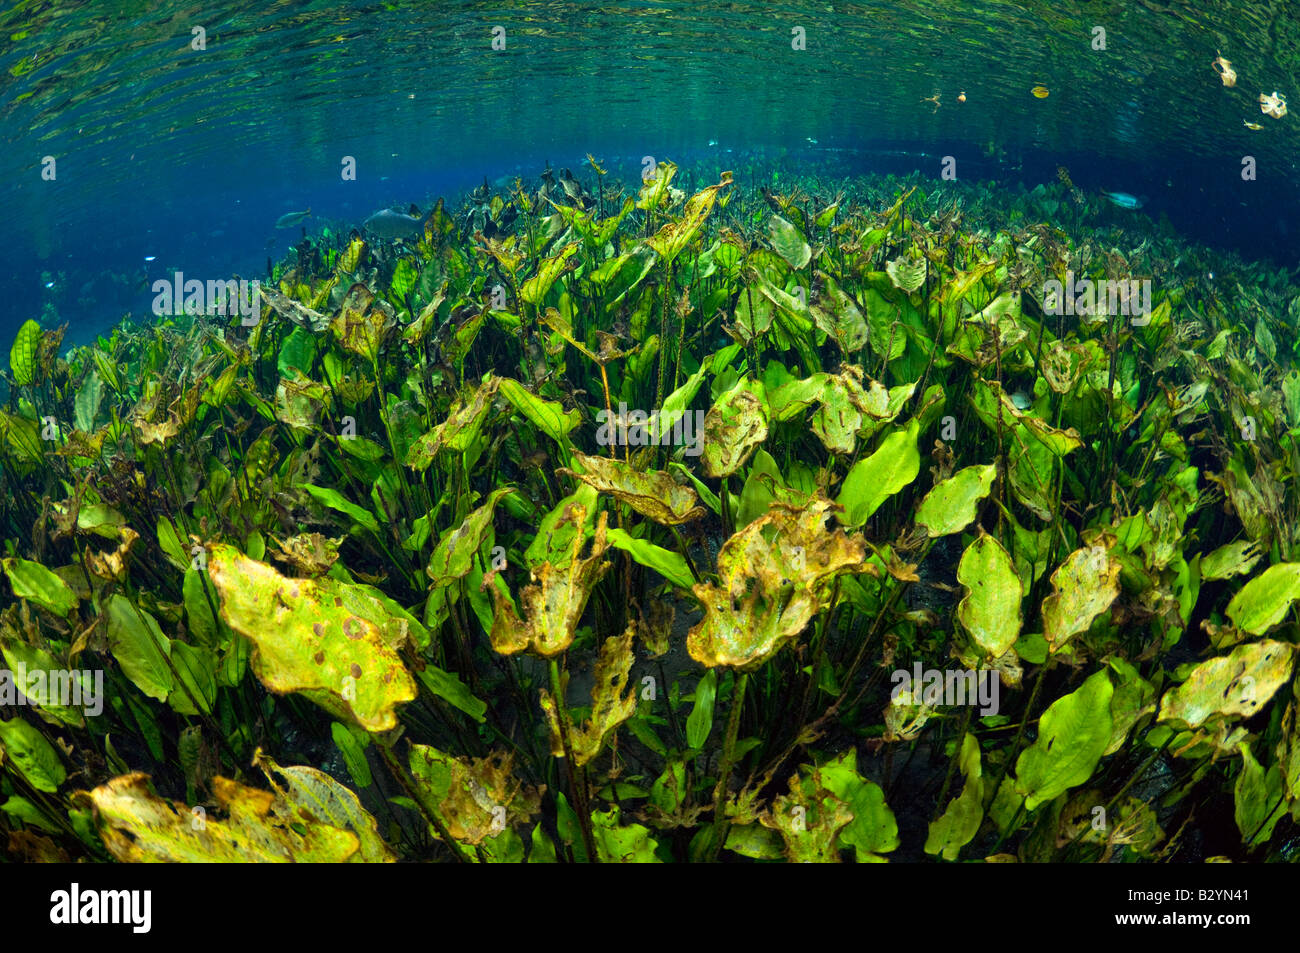 Brushwood Leaf Rich Water Plantain Echinodorus macrophyllus photographed in a spring in Mato Grosso do Sul, Brazil - Stock Image